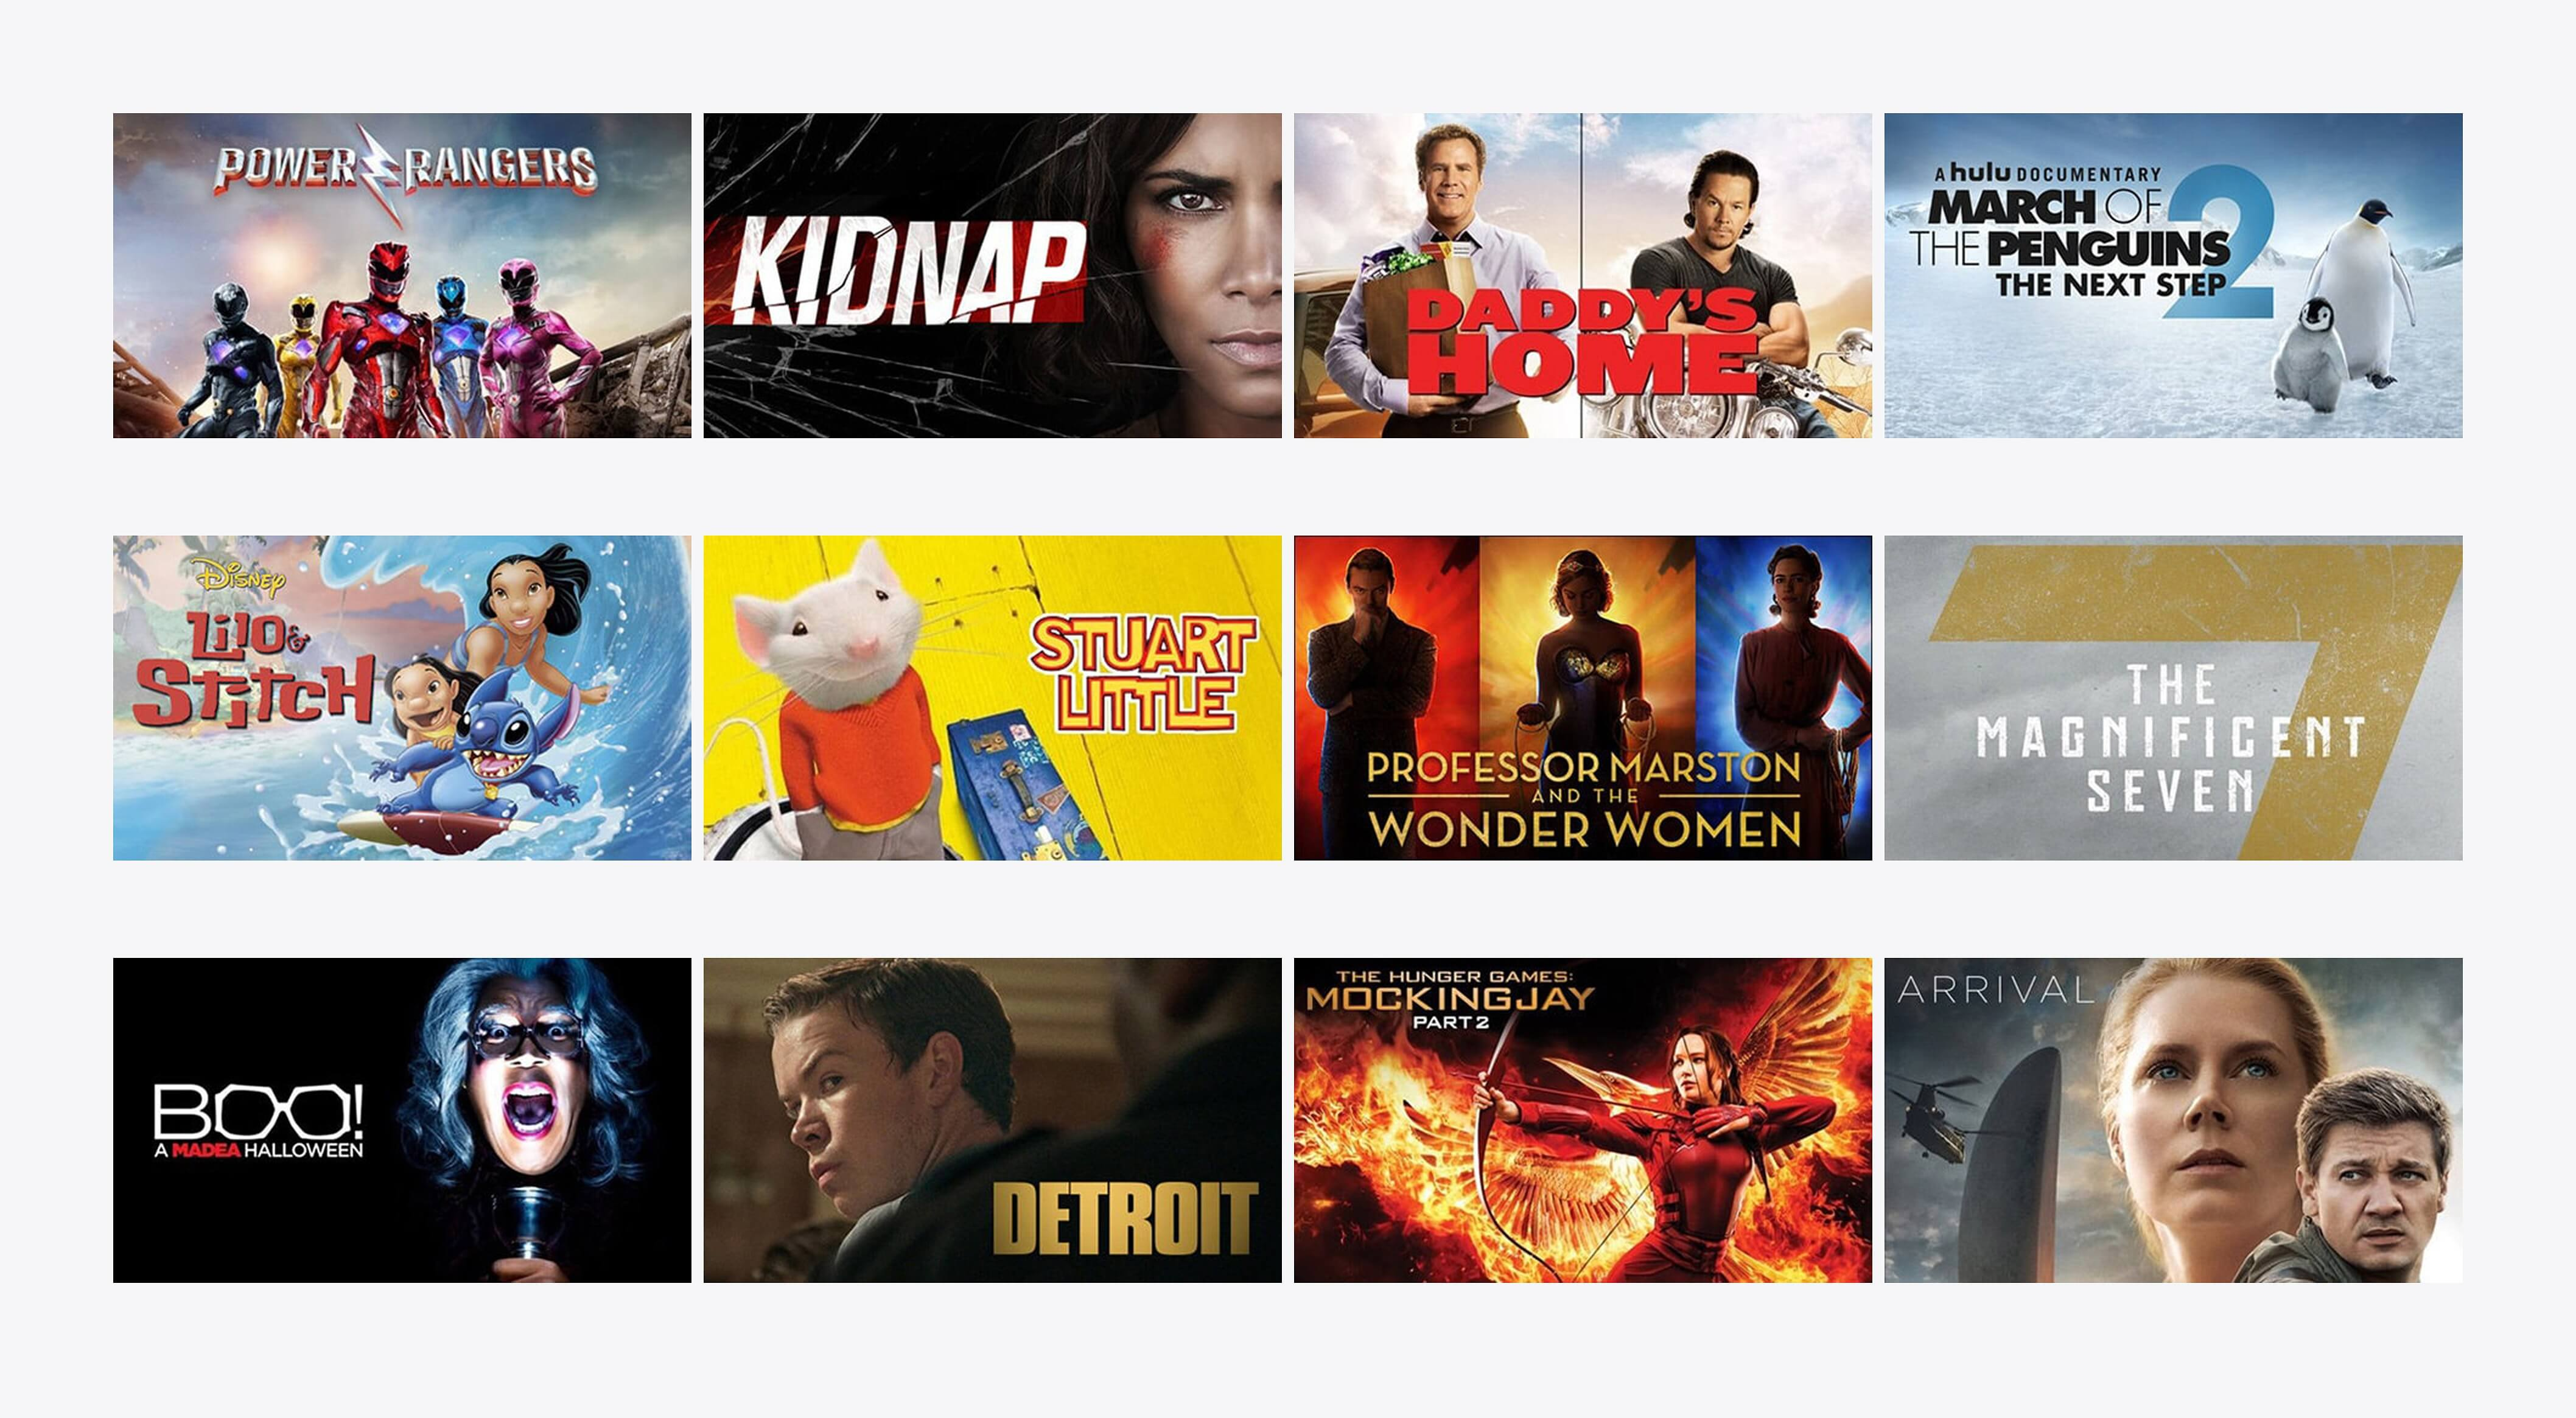 Watch movies online hulu power rangers kidnap daddys home arrival ccuart Images